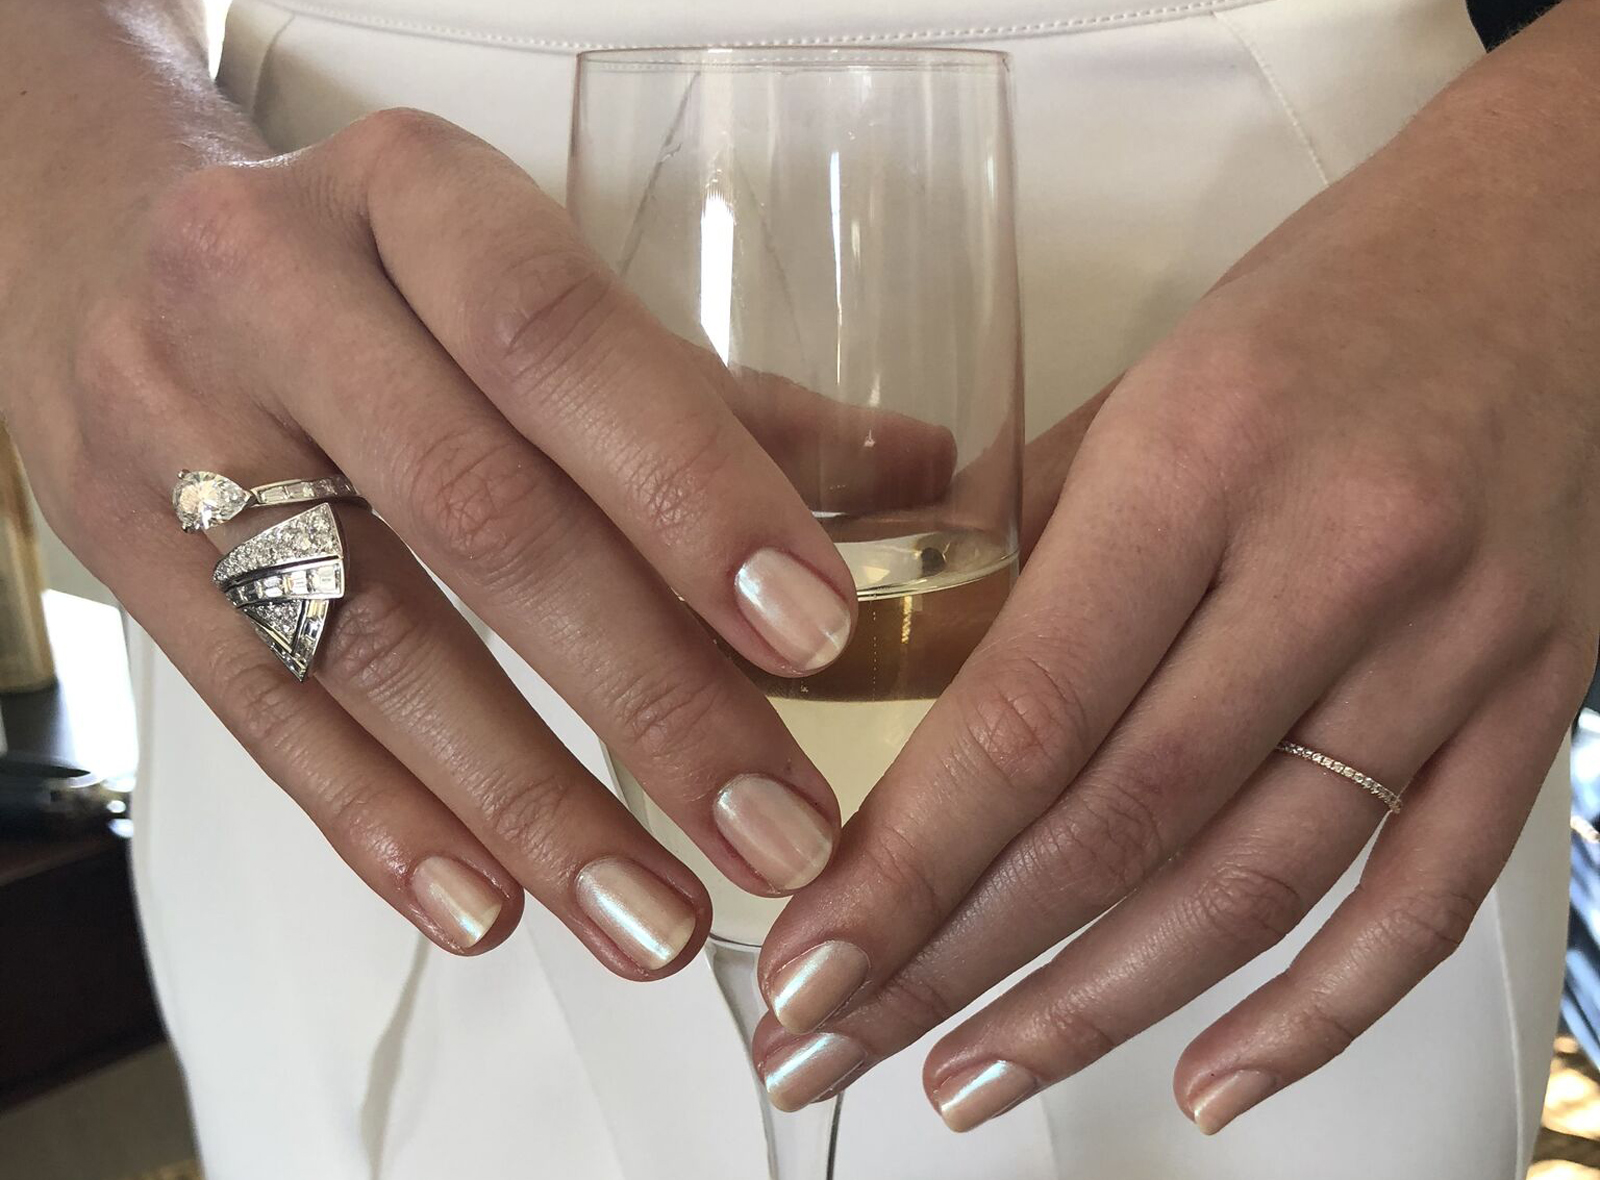 Margot Robbie's manicure at the Oscars 2018